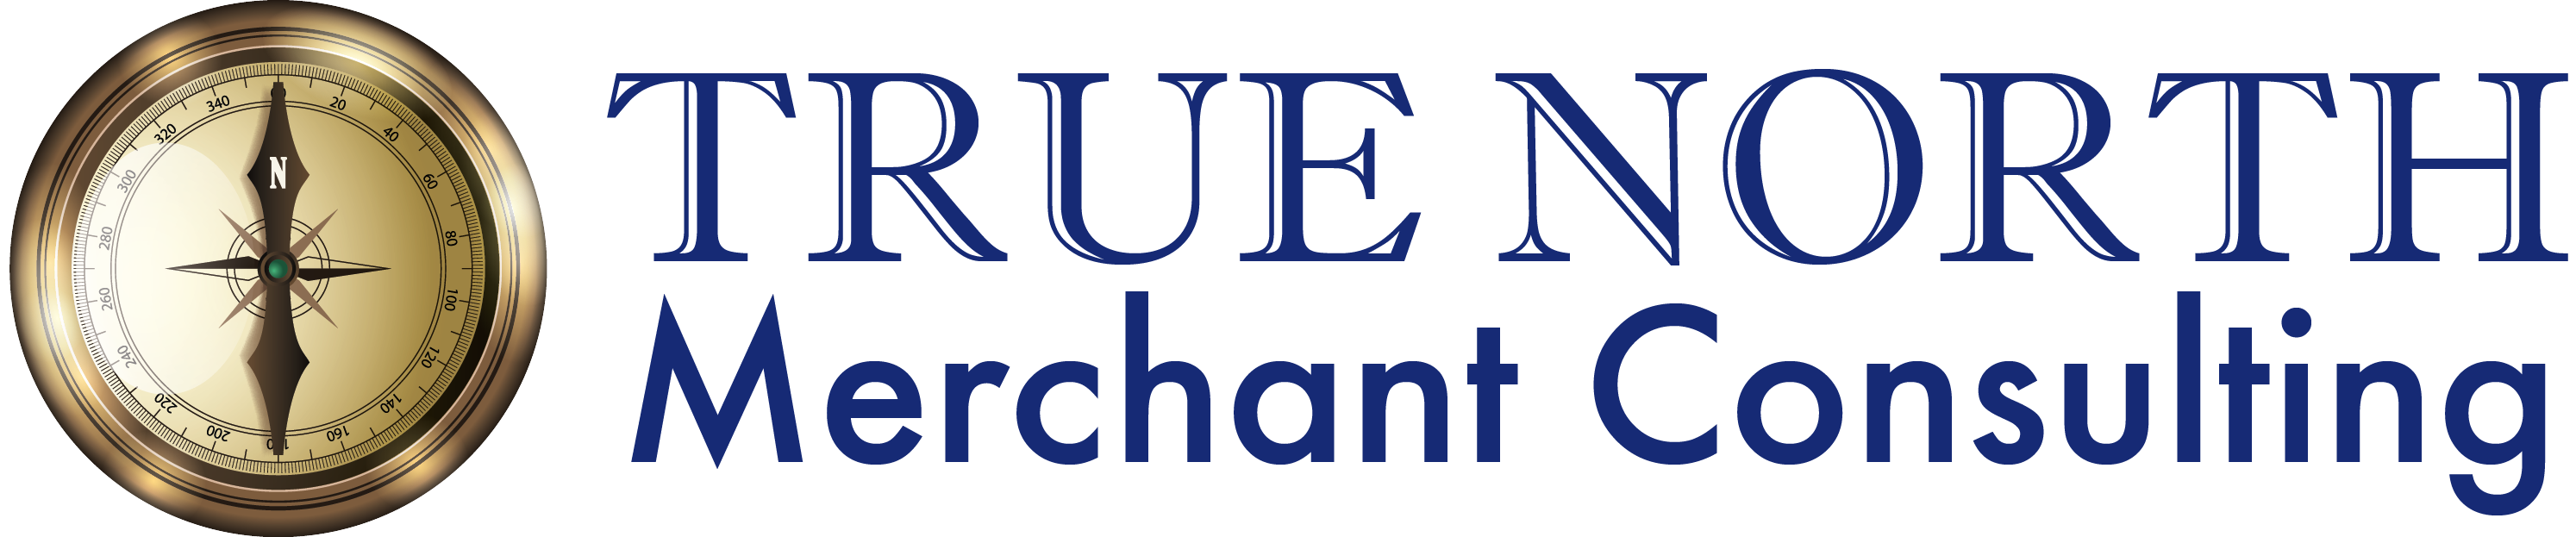 True North Merchant Consulting Logo - Blue